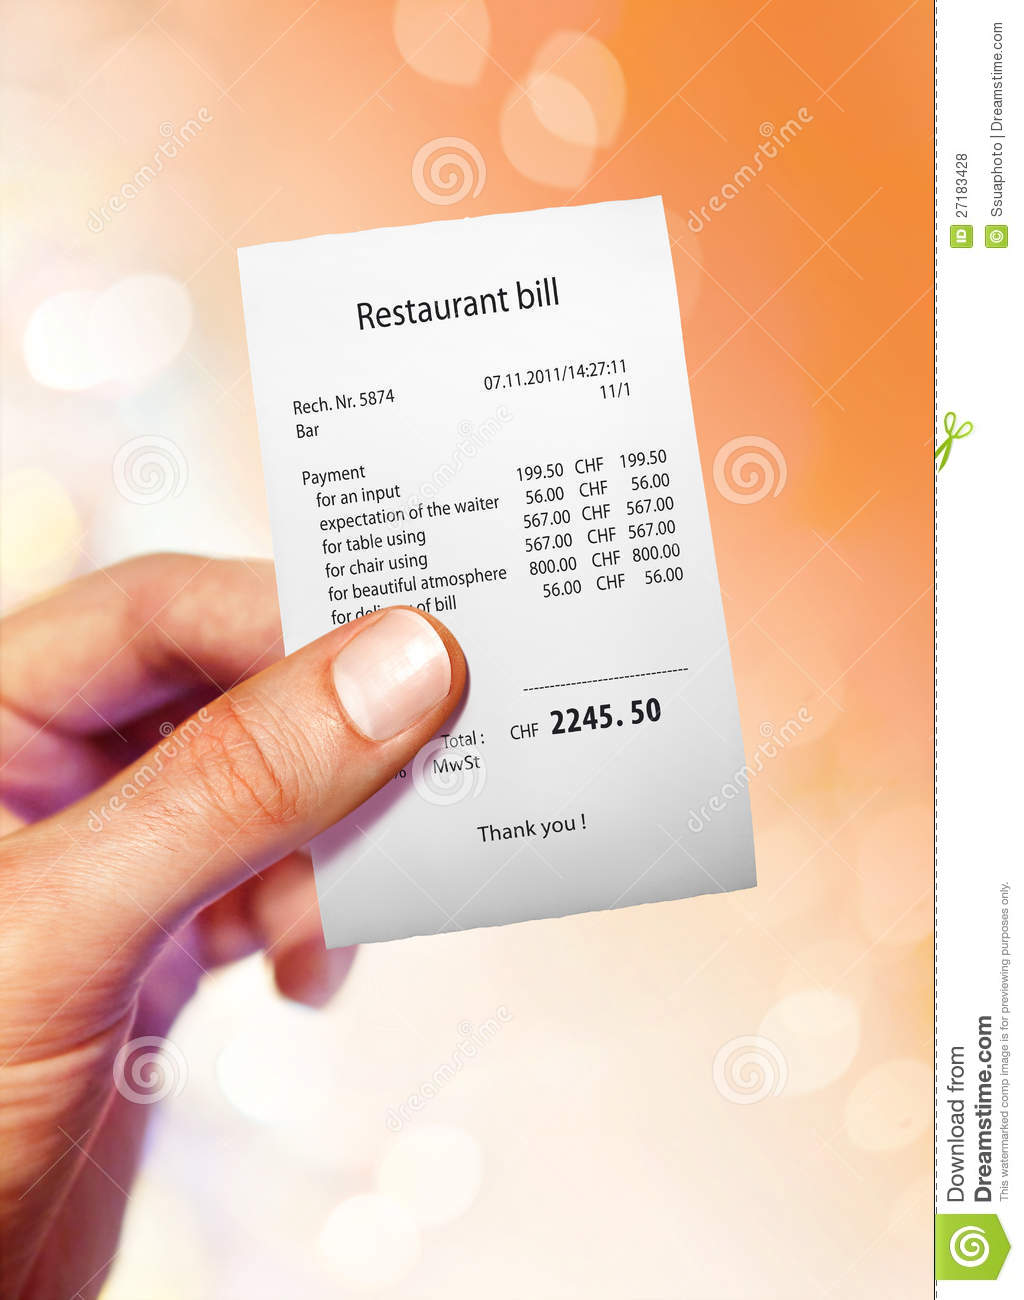 Restaurant Bill Royalty Free Stock Photos Image 27183428